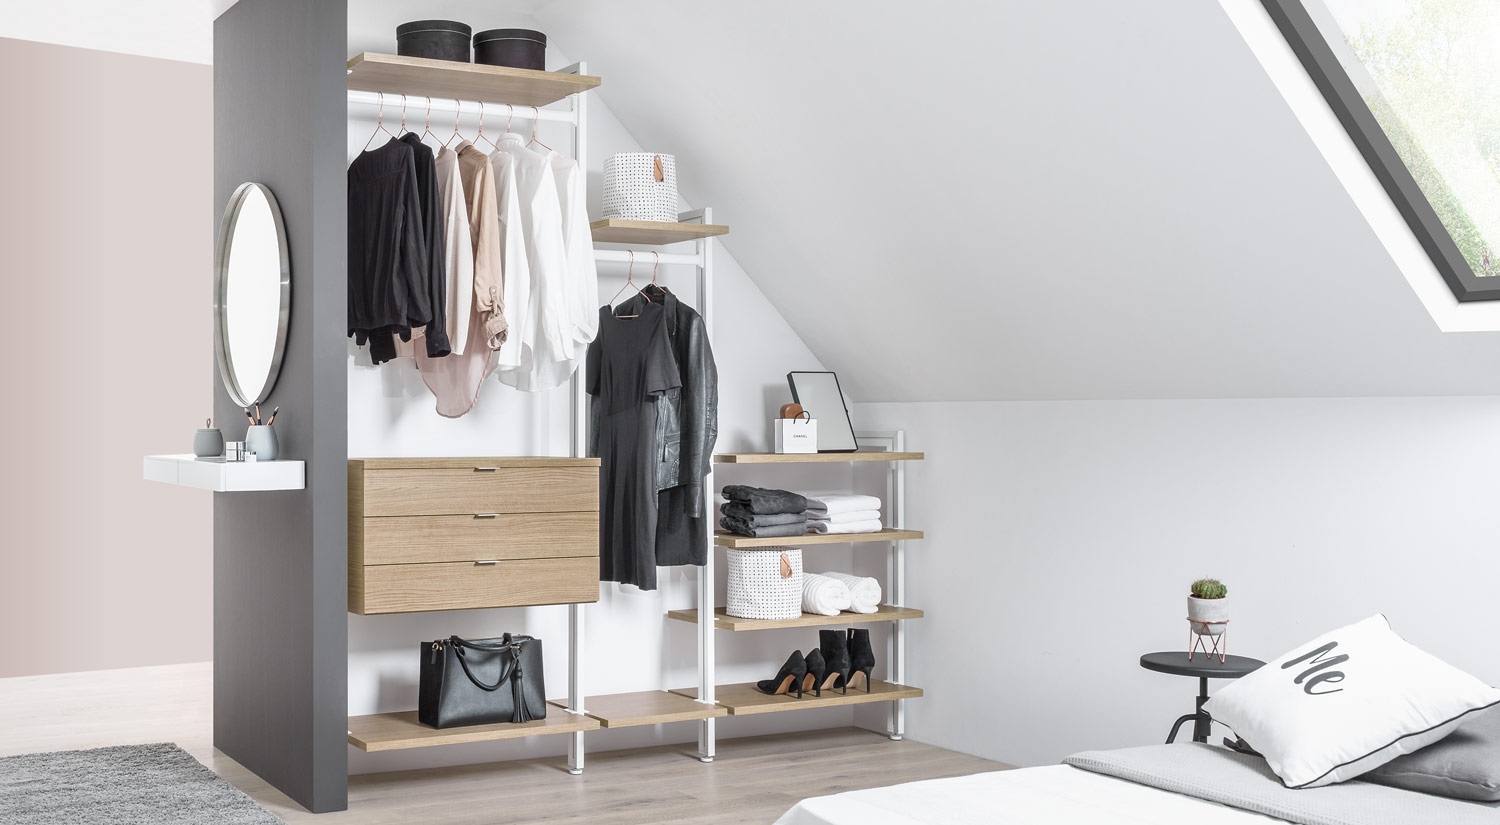 Slanted ceiling shelves - CLOS-IT shelving unit as an open wardrobe in the bedroom